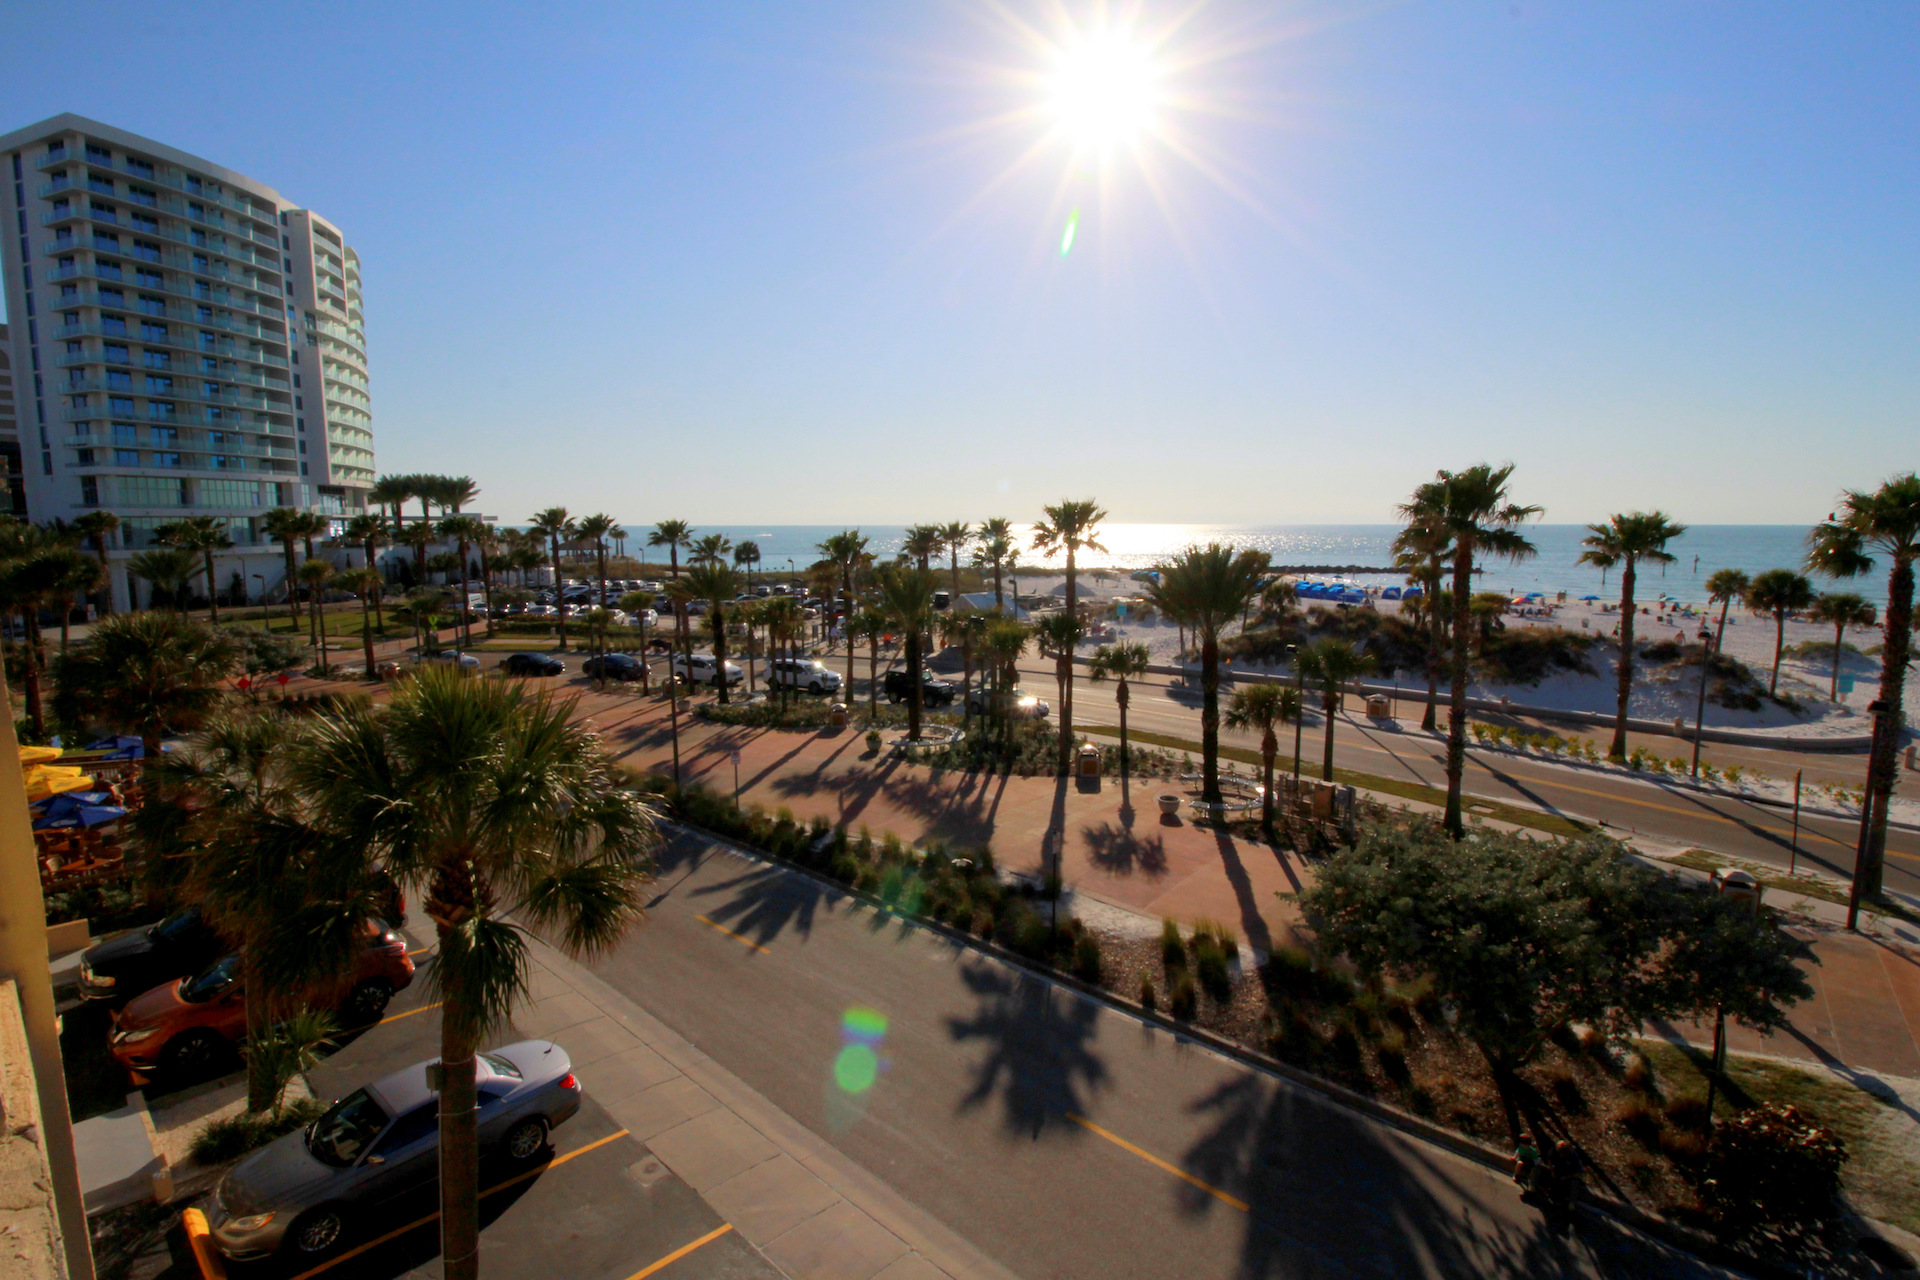 Clearwater beach as viewed from Seaside Inn and Suites balcony.jpg